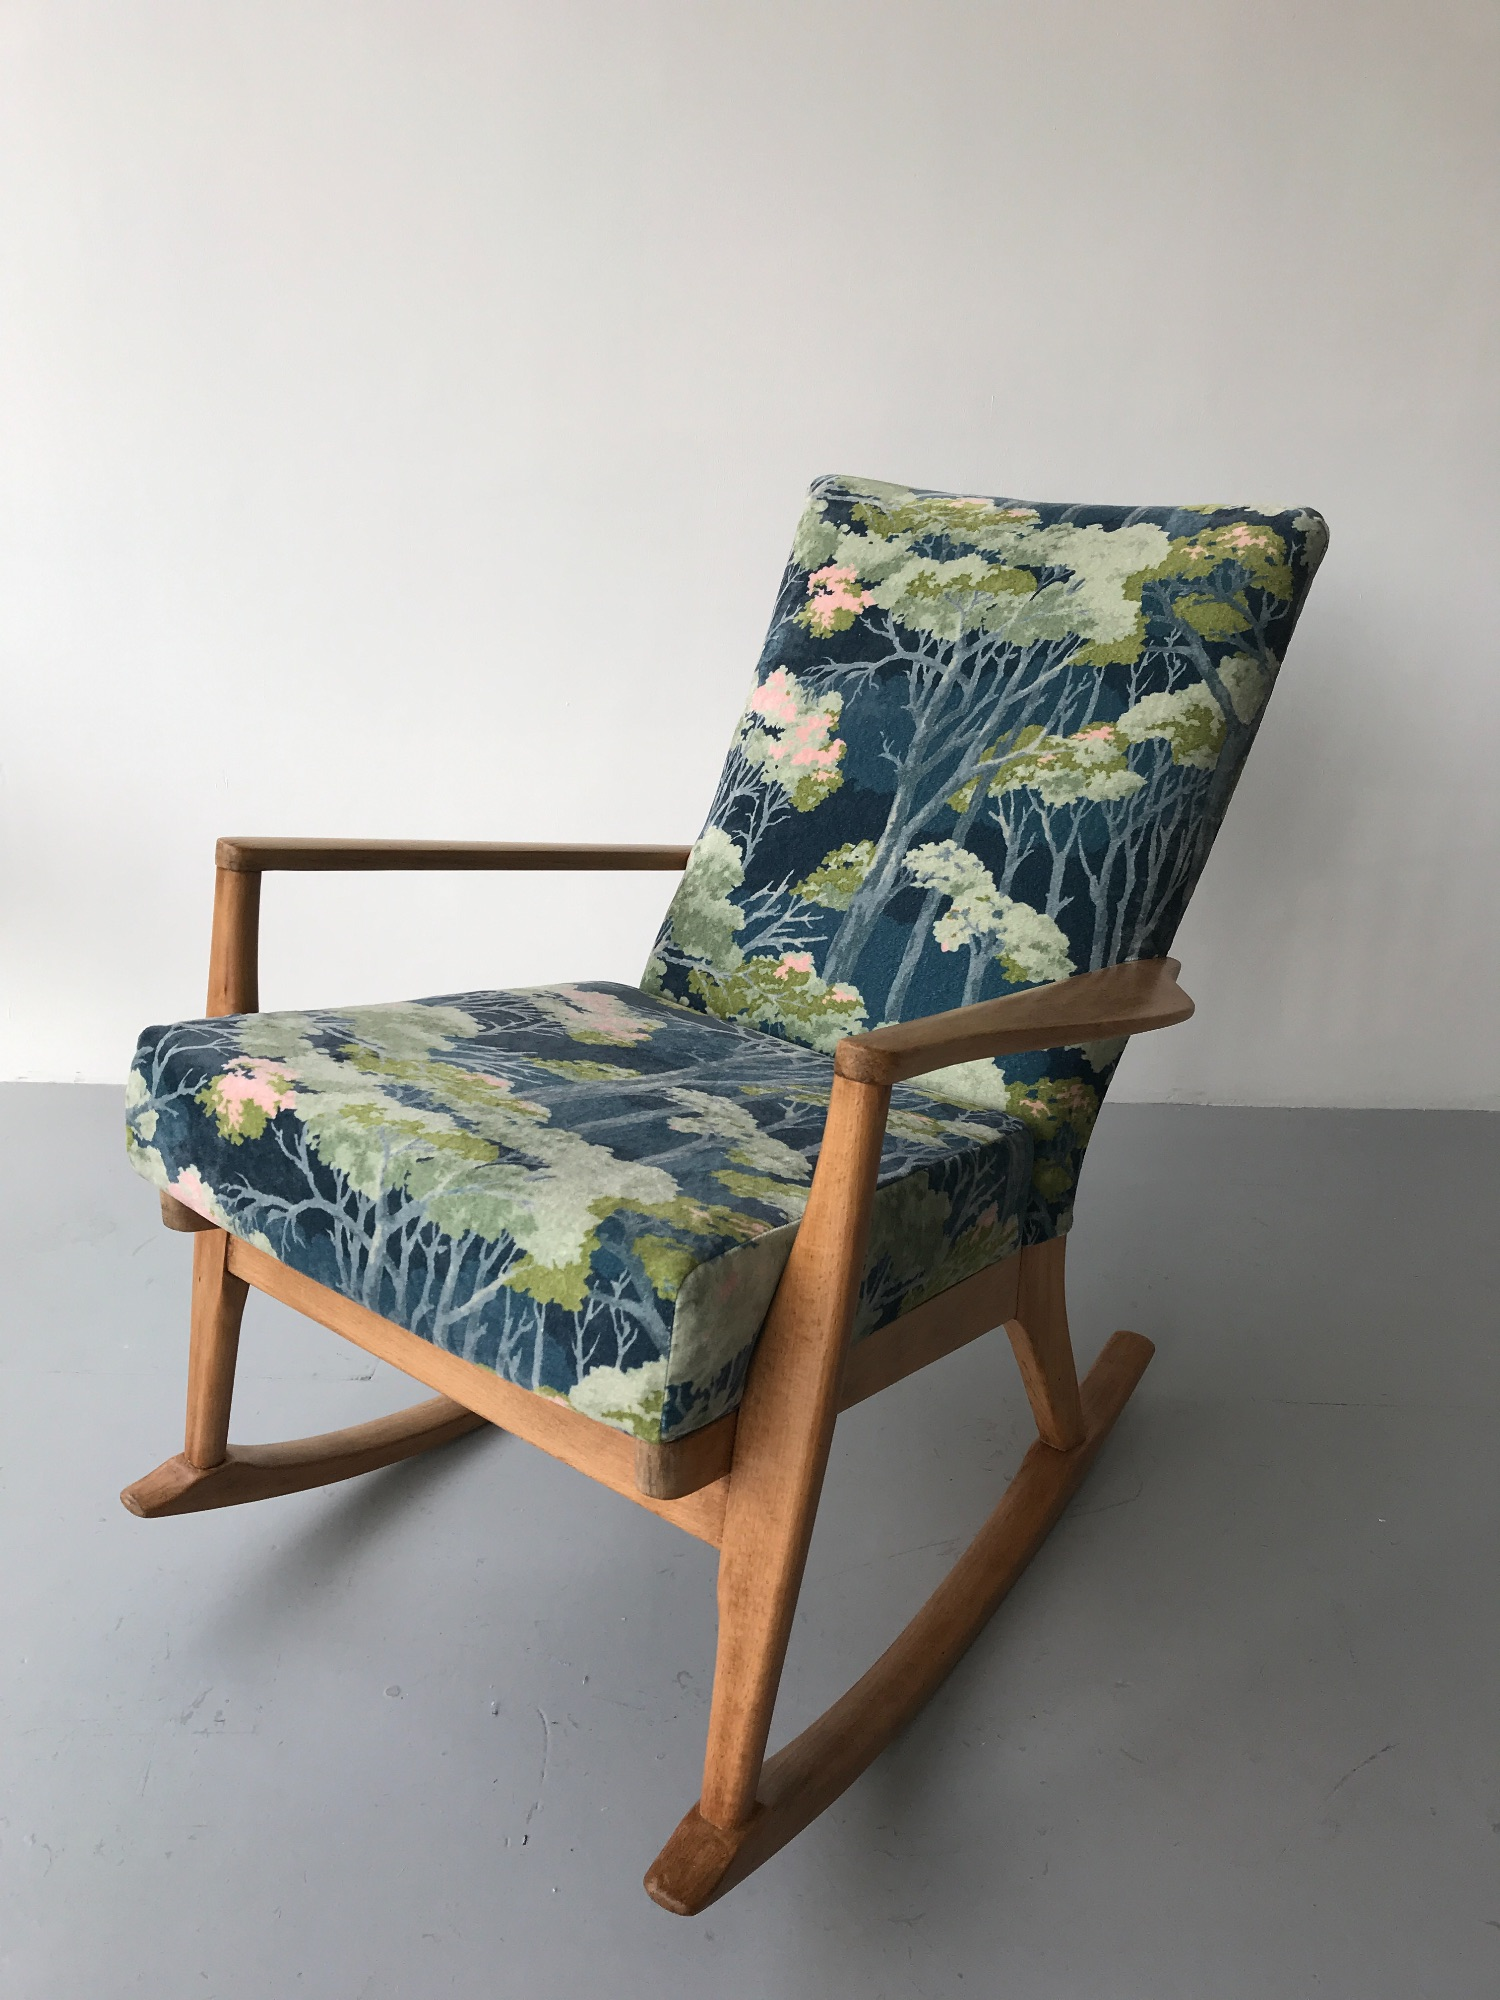 1960's Parker Knoll Rocking chair by Spring Upholstery Brighton upholstered in Linwood 's Omega velvet